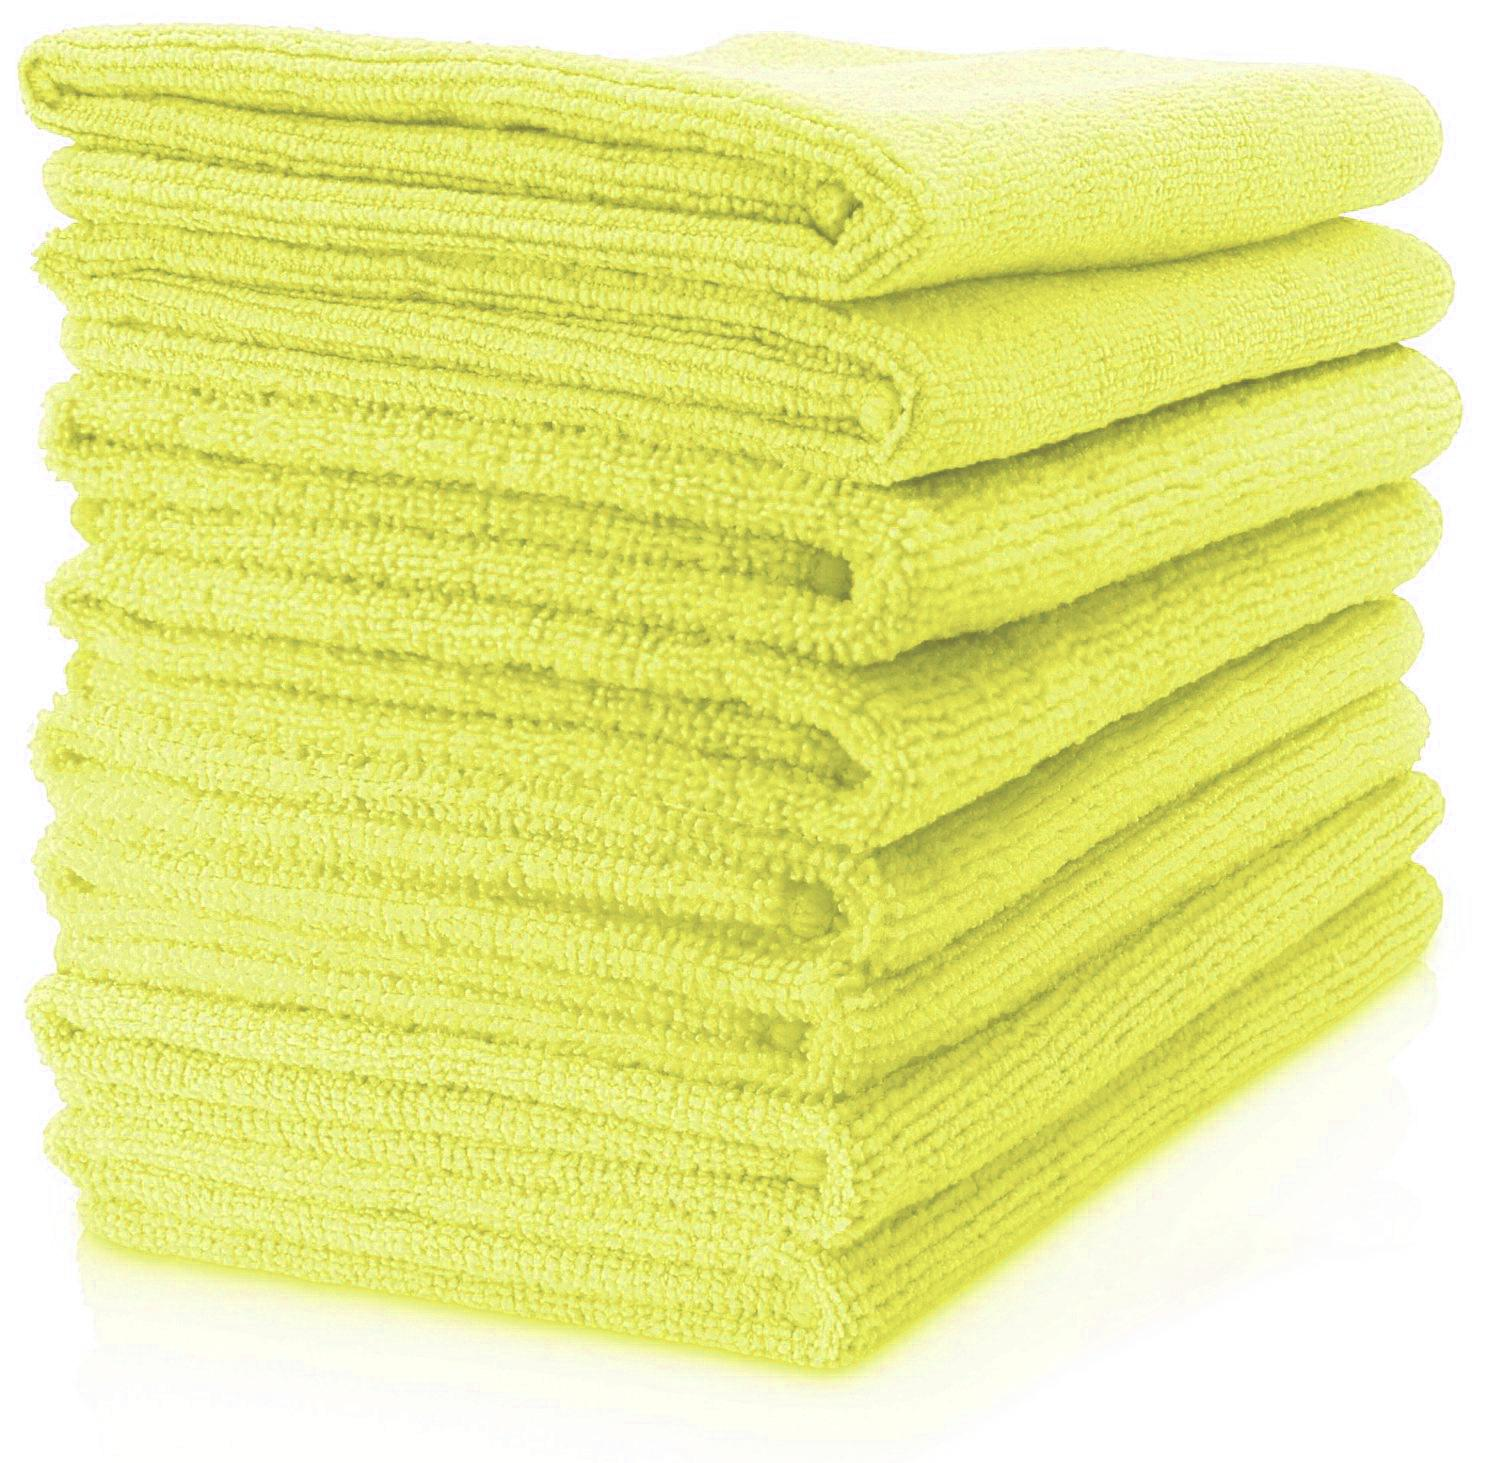 MAXIGLEAM Yellow Microfibre Cloths Pack of 50 Cloths 40x40cms